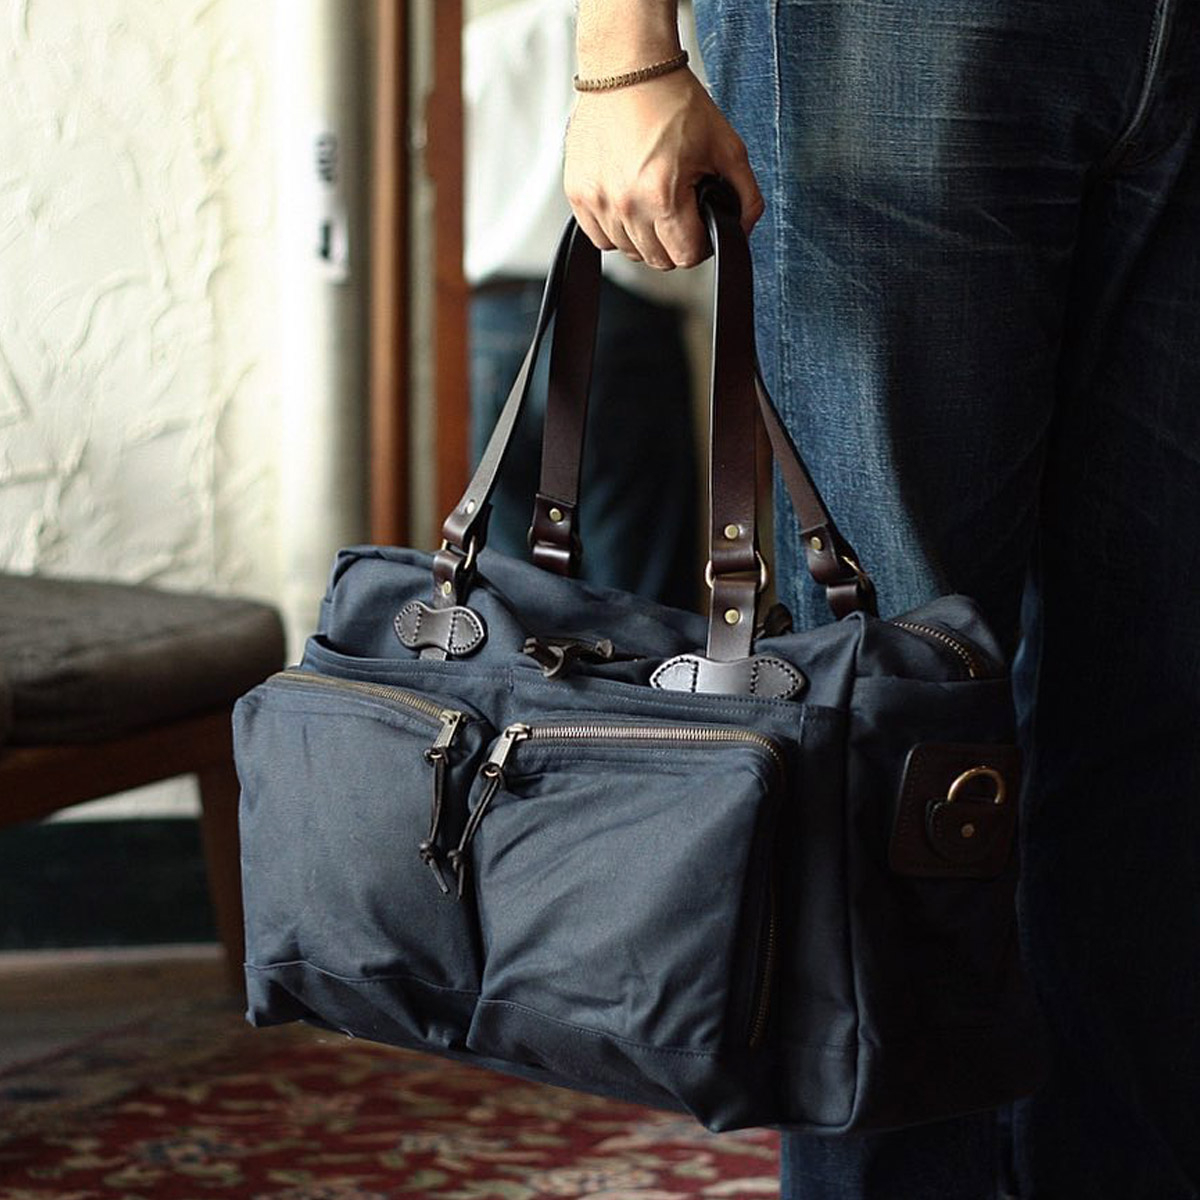 Filson 48-Hour Duffle 11070328 Navy, a well built and robust duffle with great pockets for a long weekend